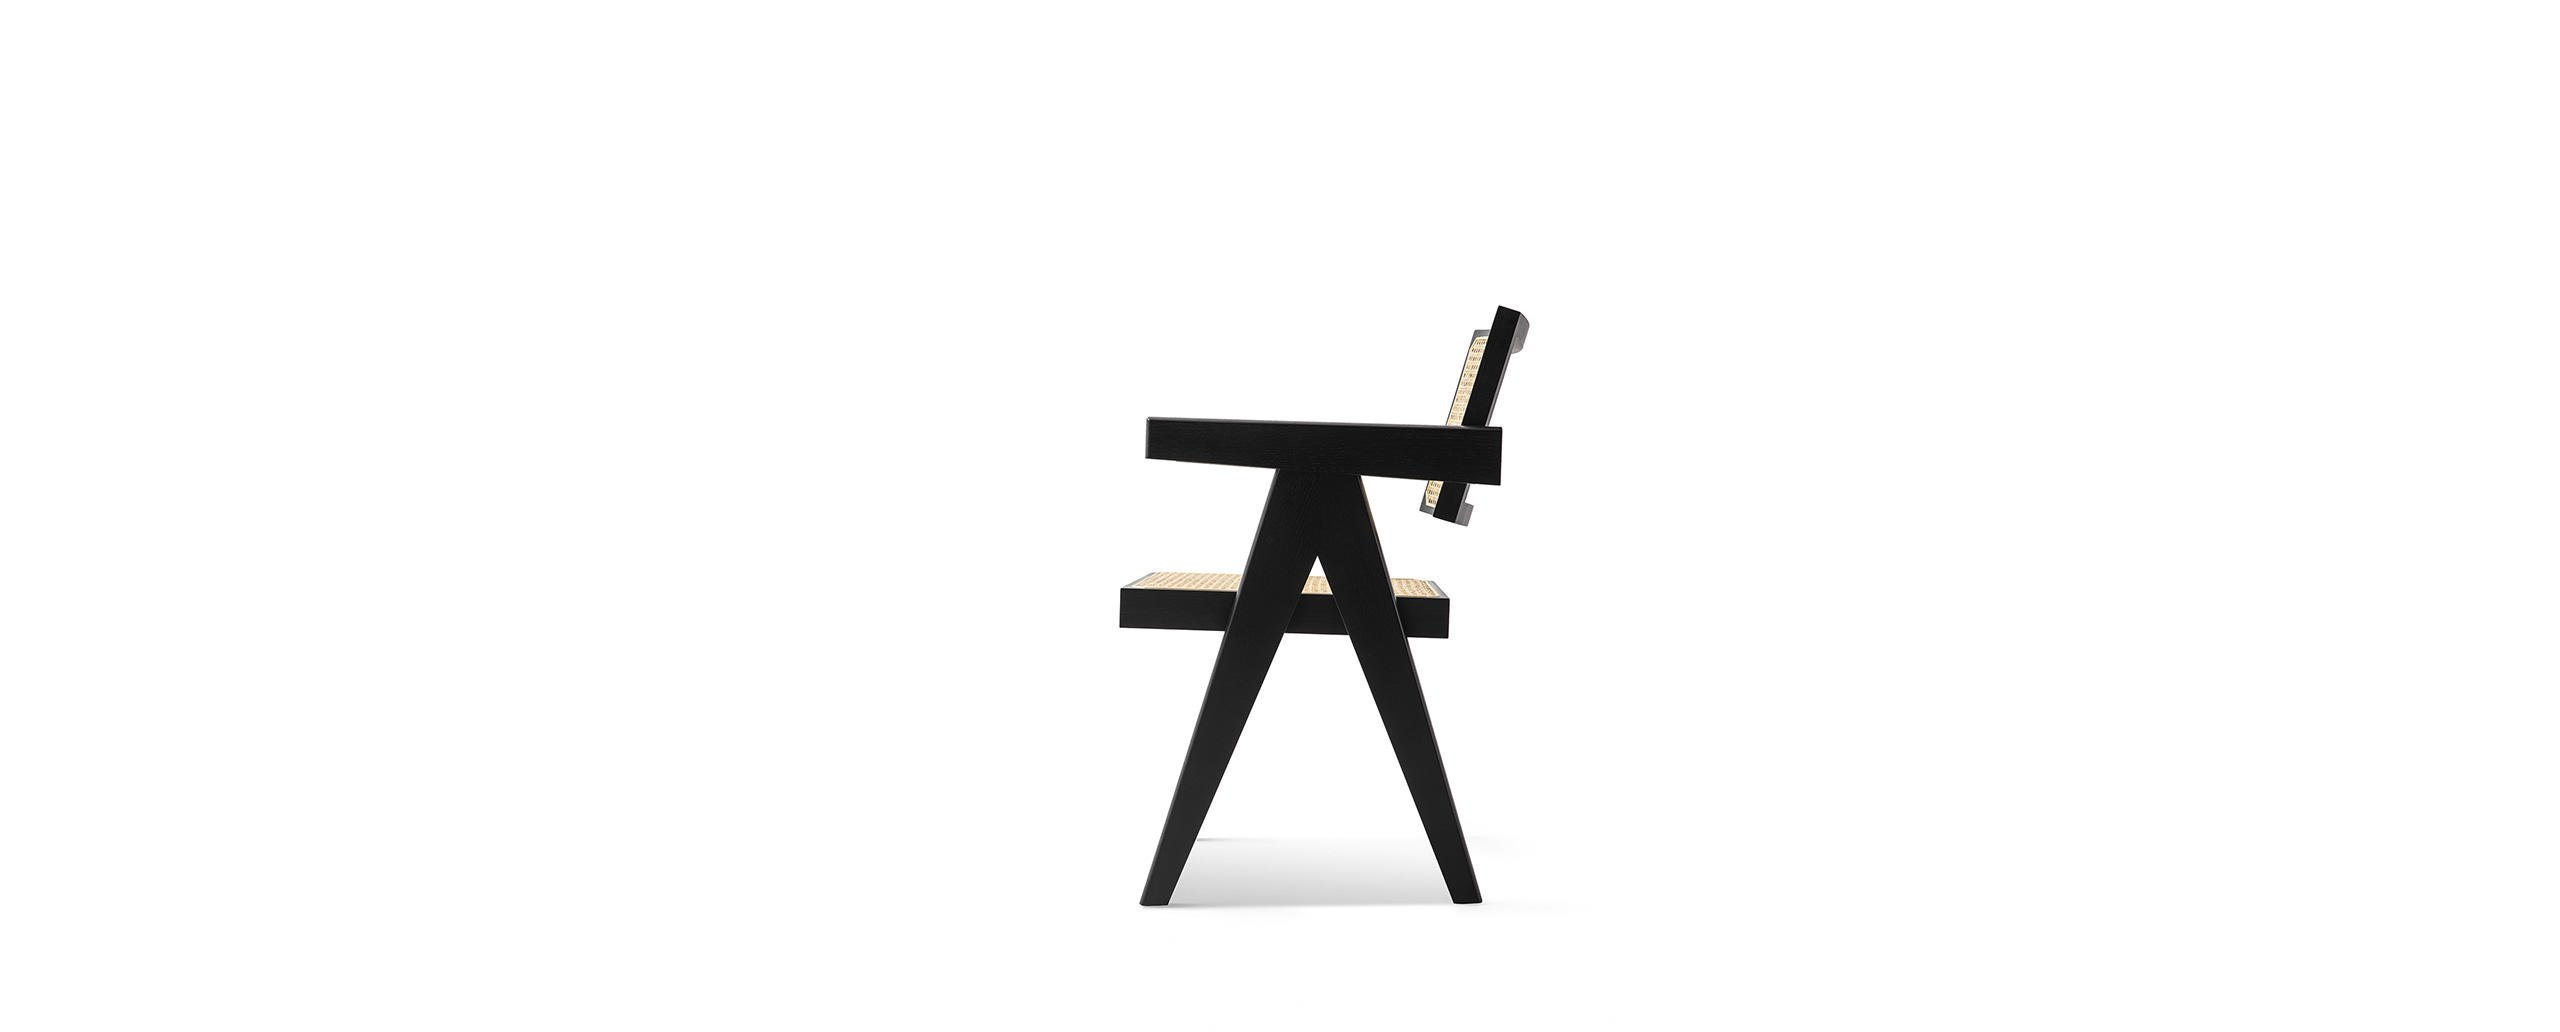 2_cassina_capitol_complex_office_chair_hommage_o_pierre_jeanneret_cassina_rd